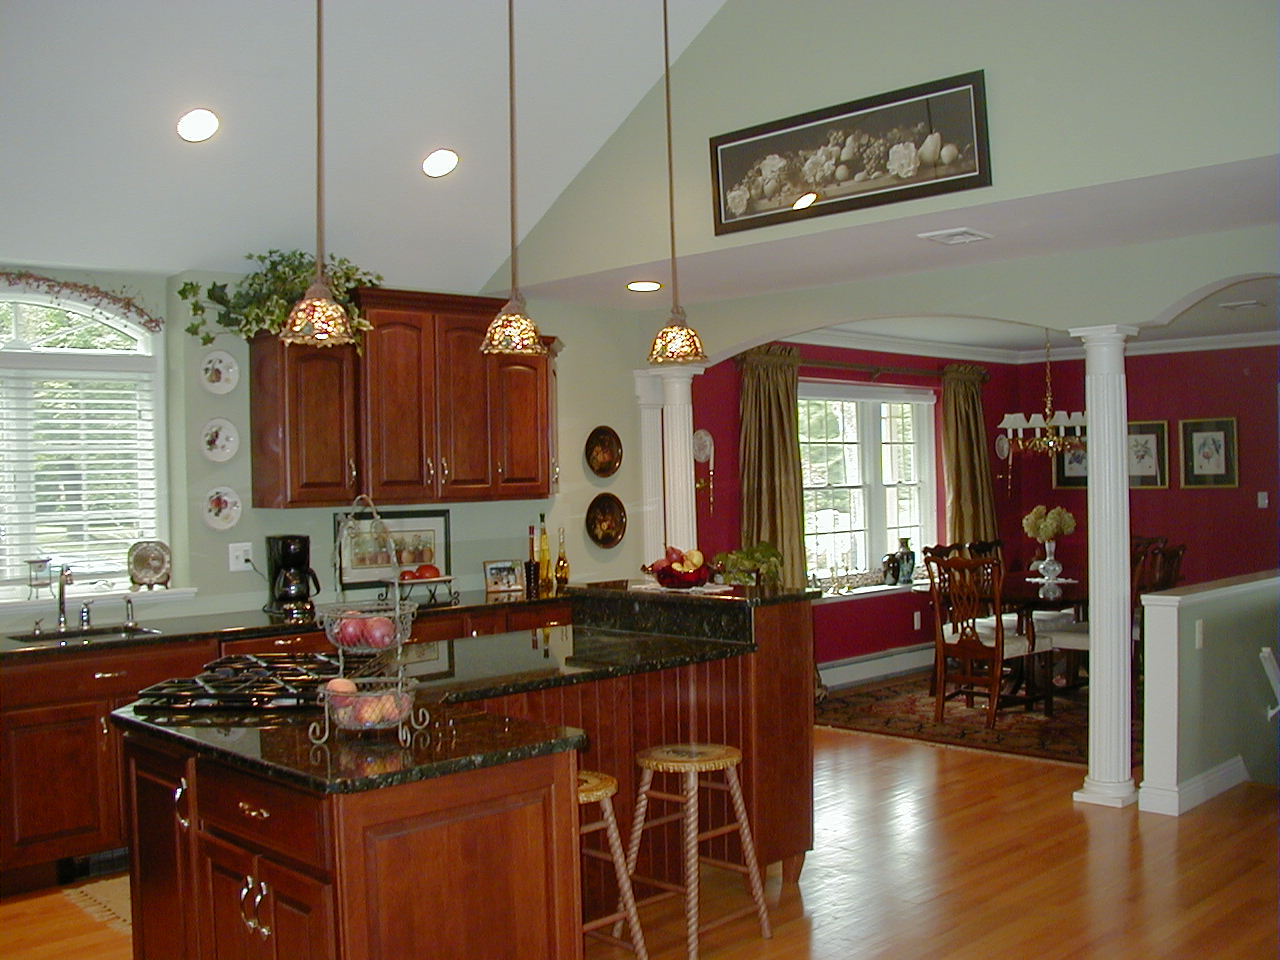 Home Remodeling Services Hans Kitchens Baths Oakland Nj